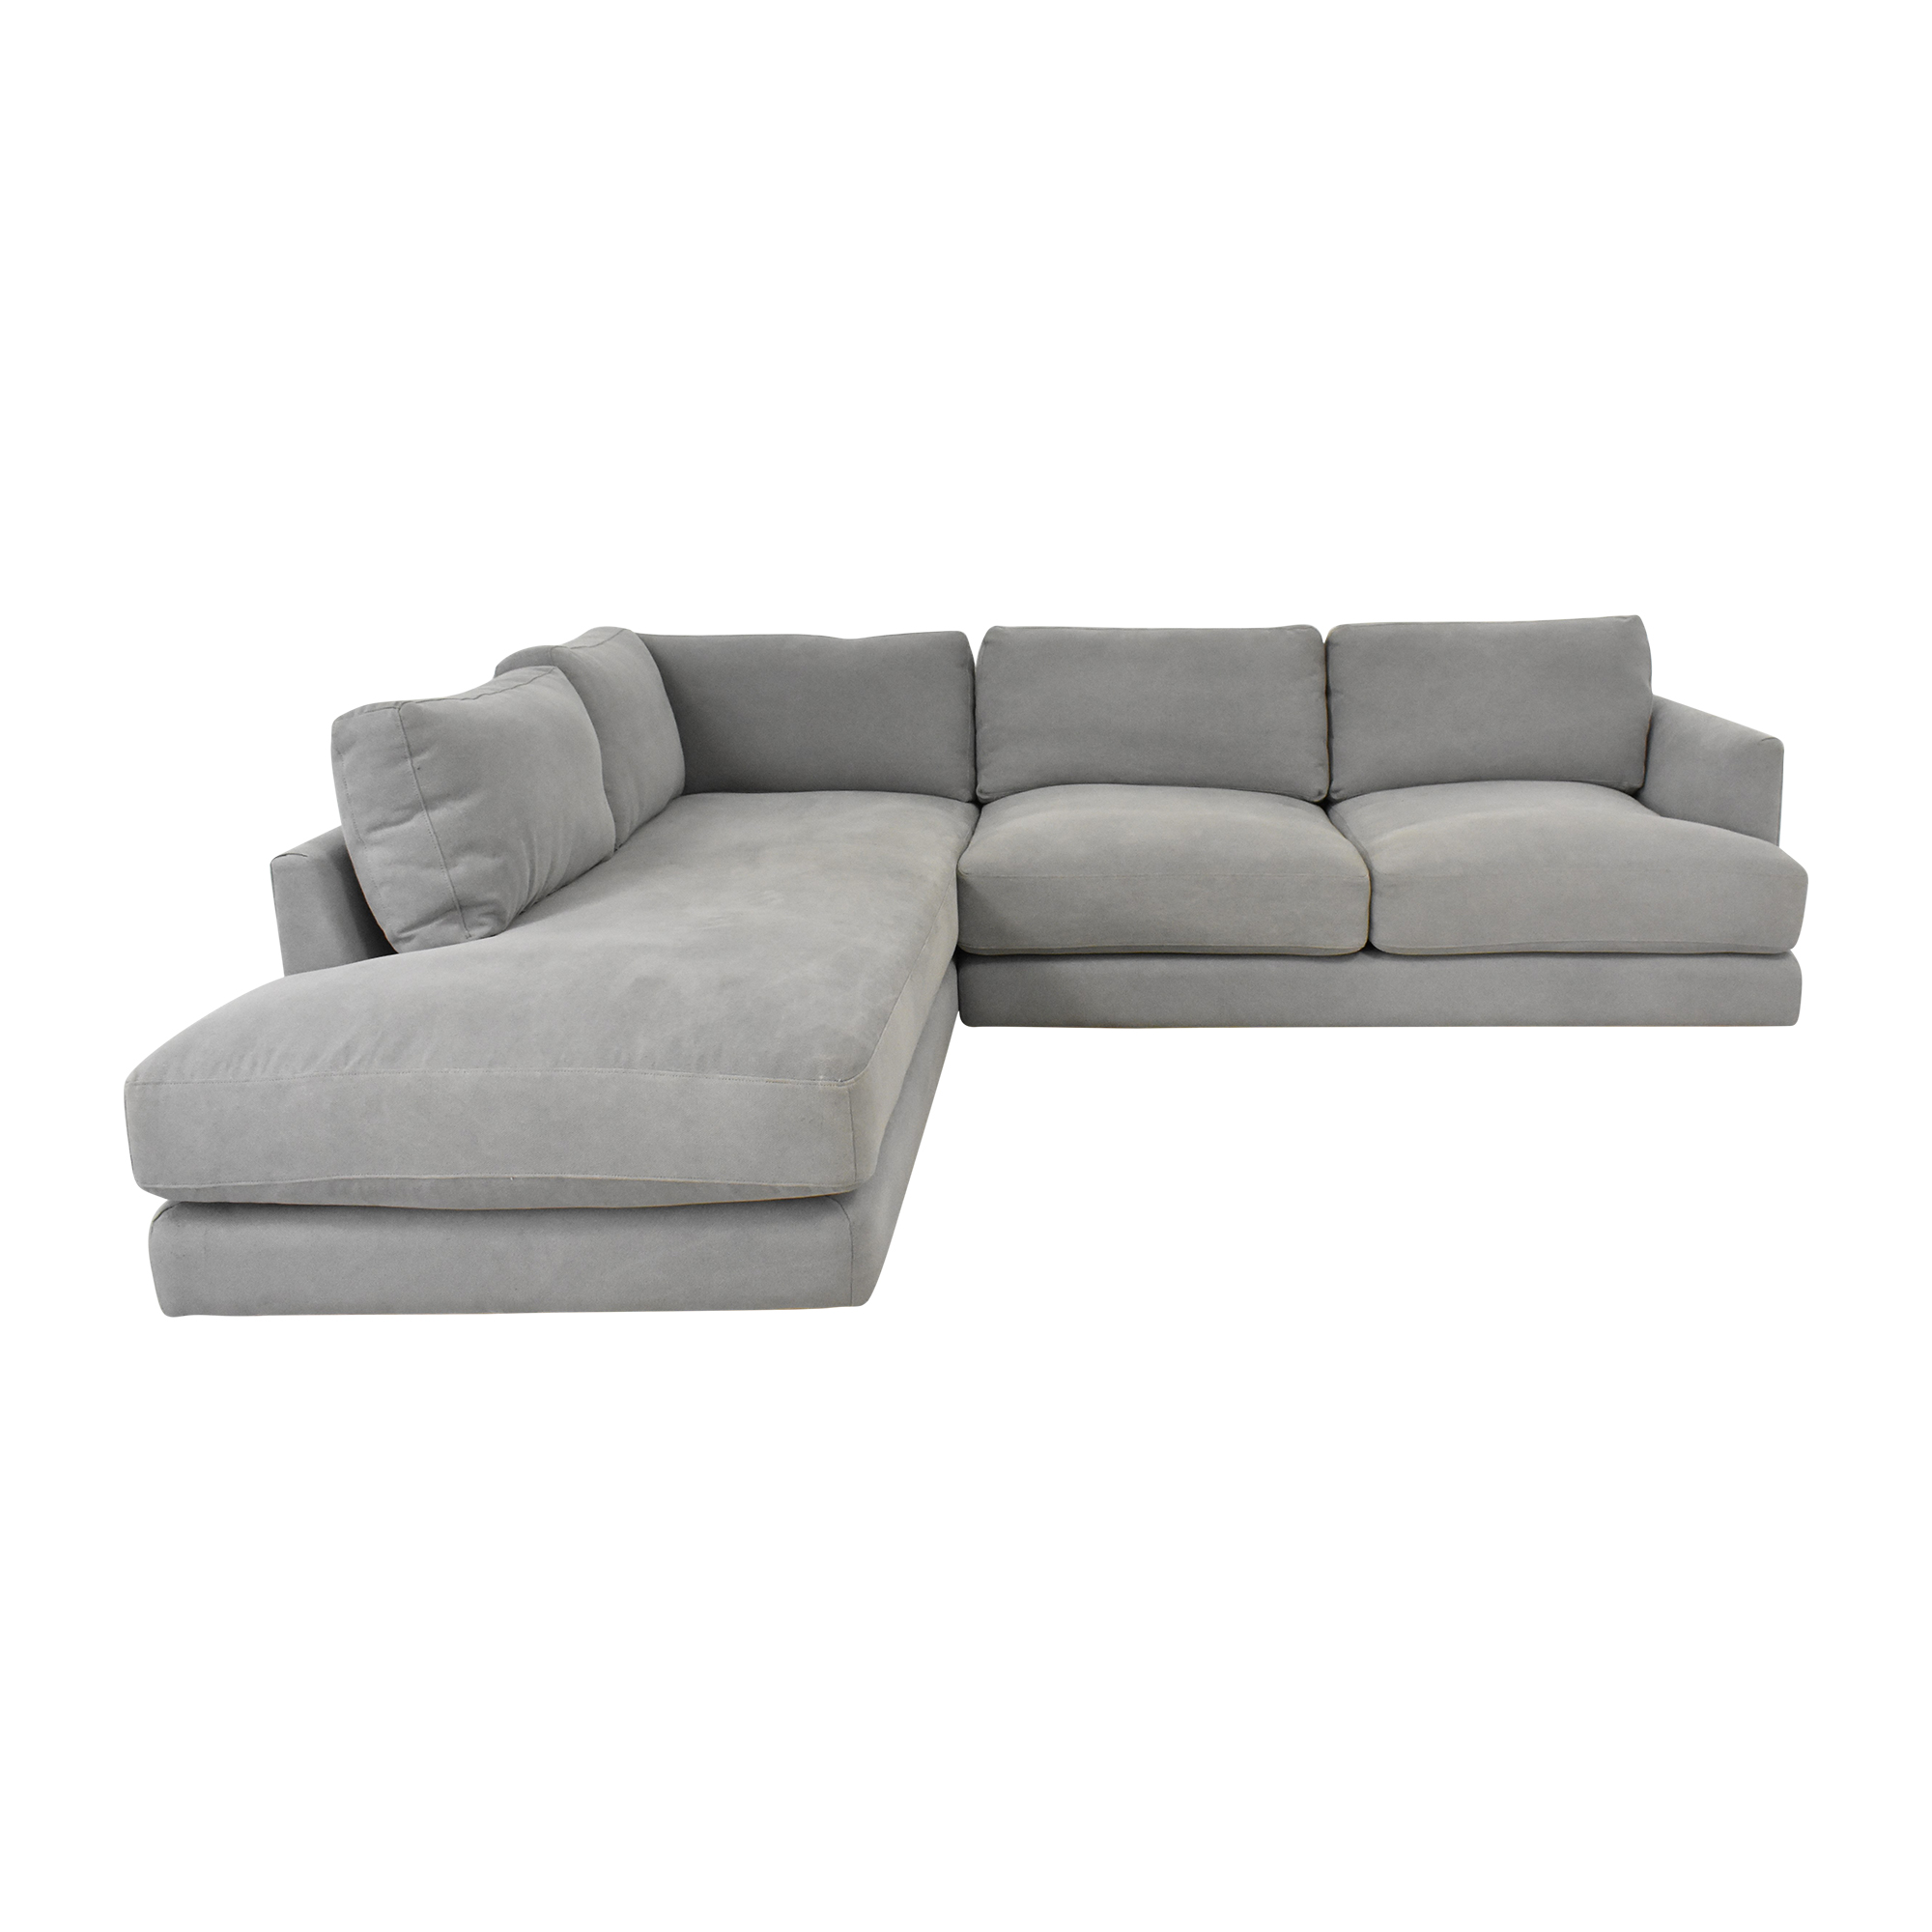 West Elm West Elm Haven Two Piece Terminal Chaise Sectional coupon